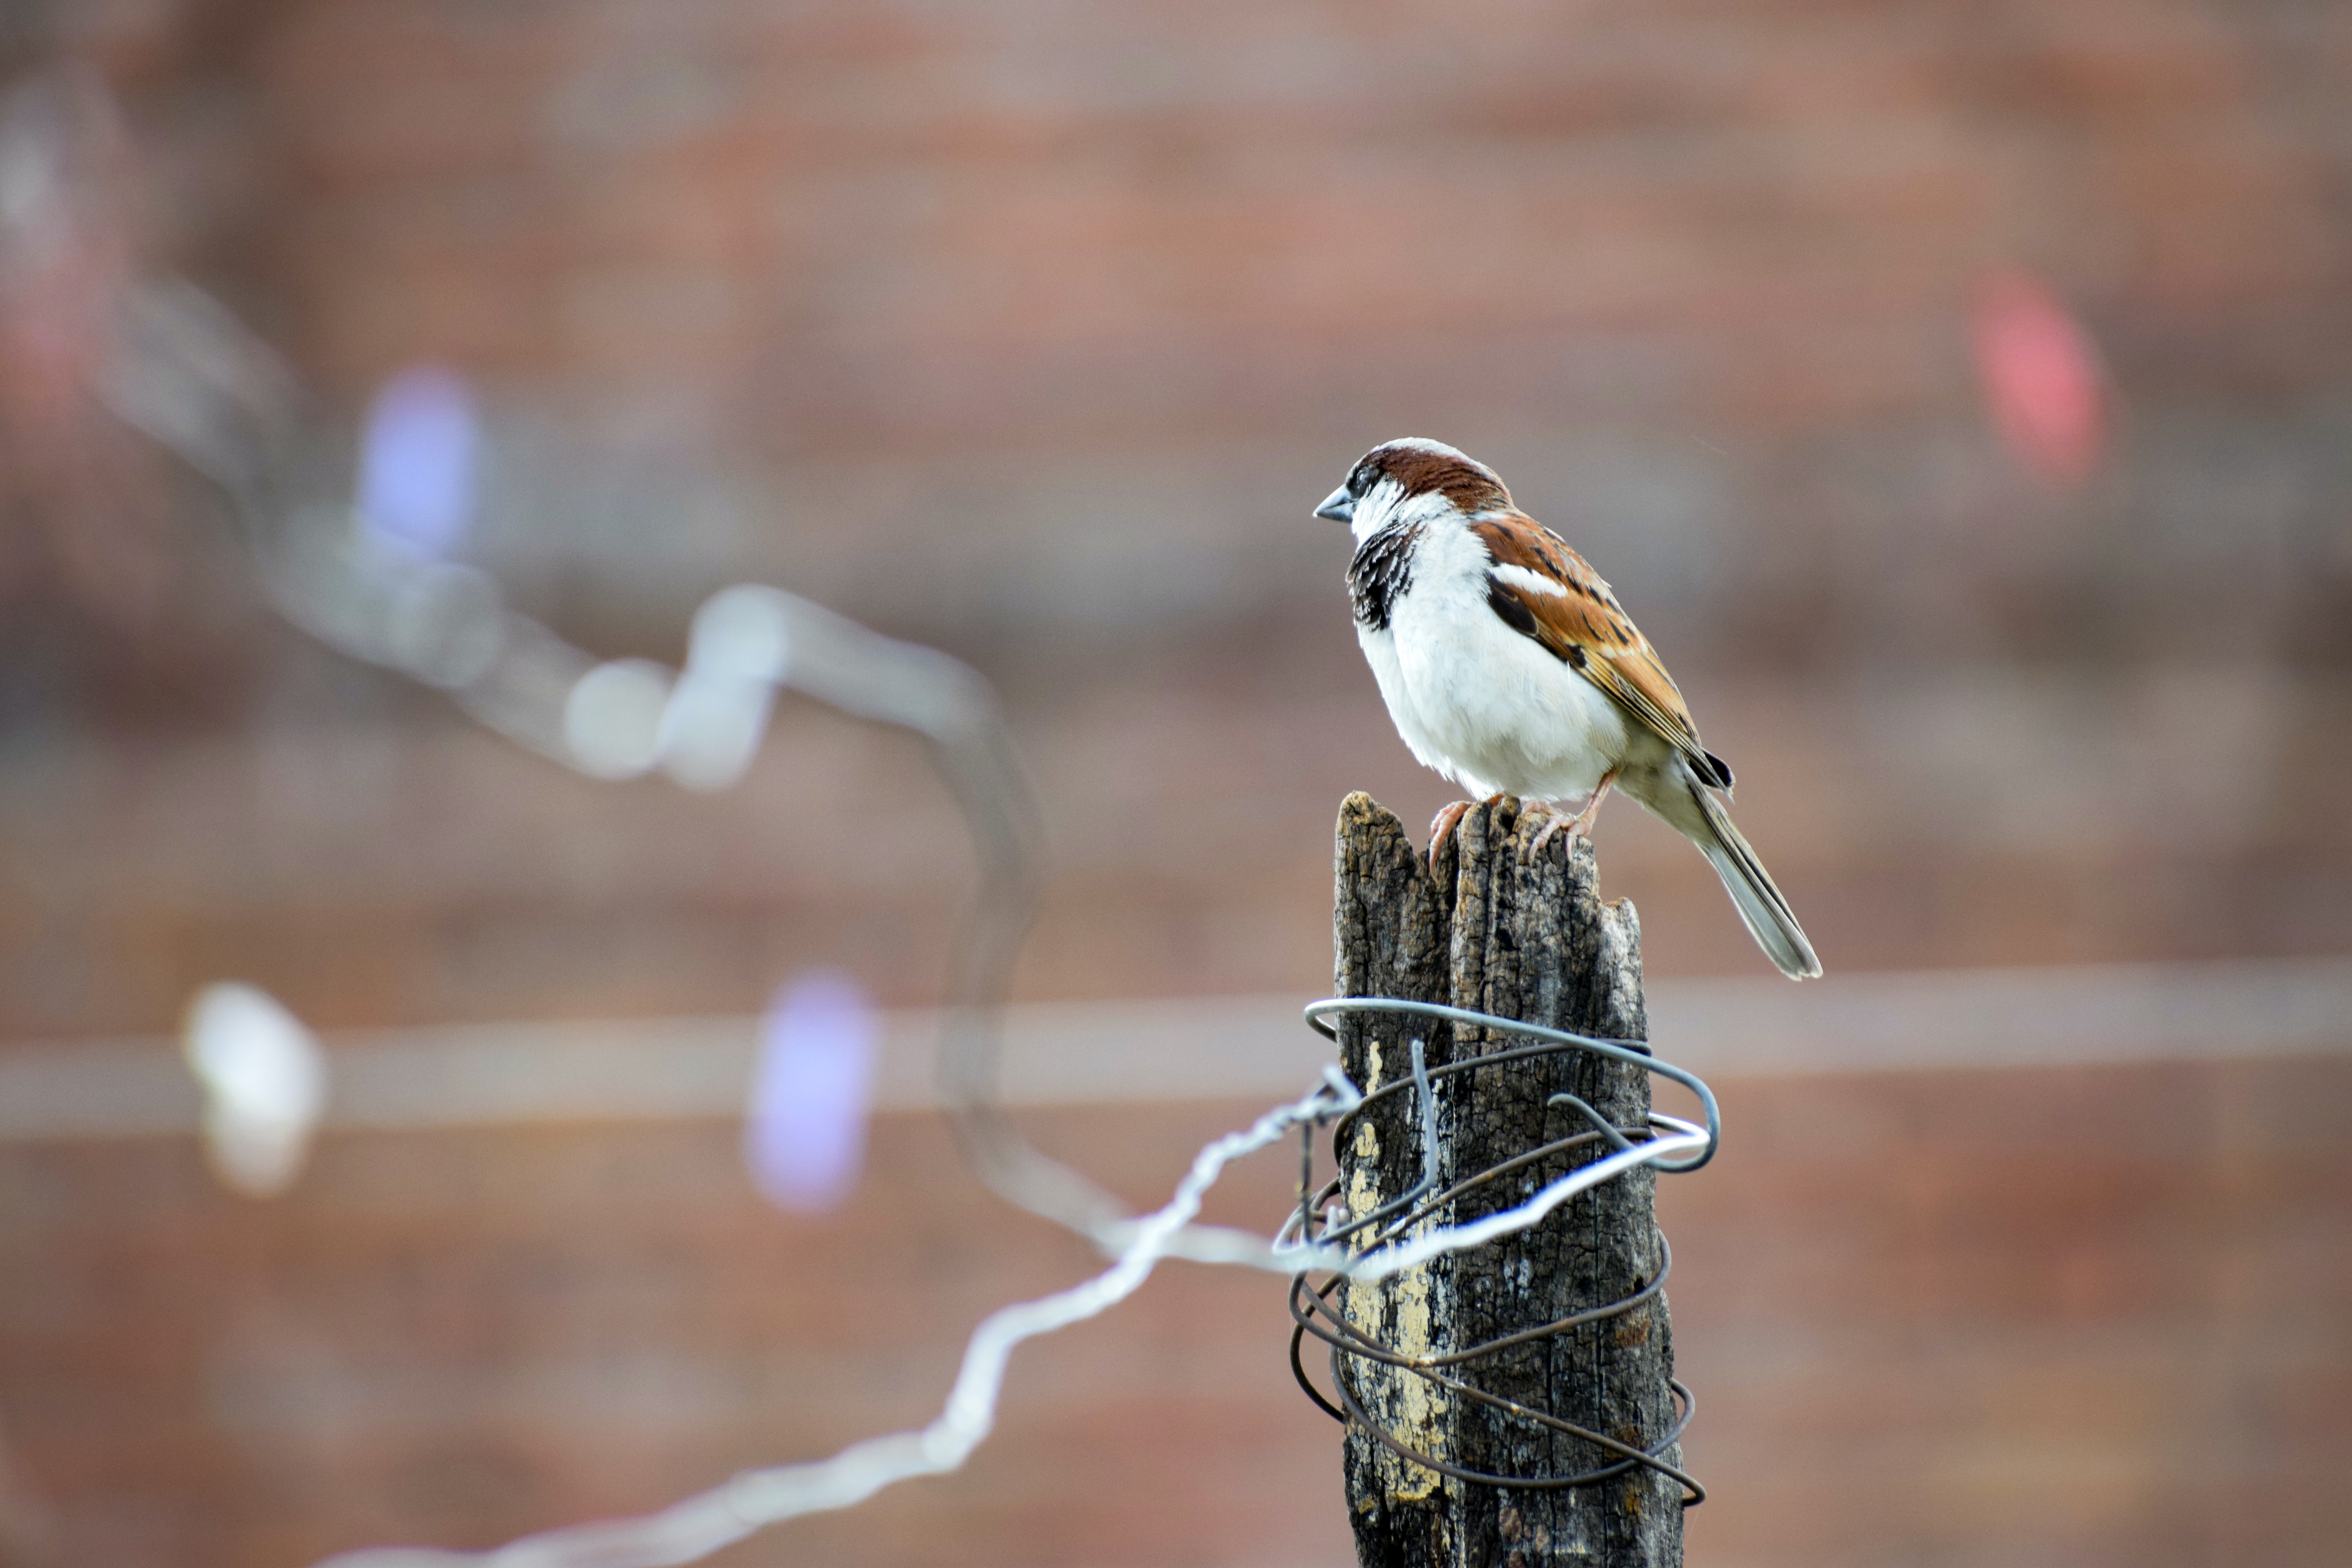 A small brown bird perched on a wooden post wrapped in wire